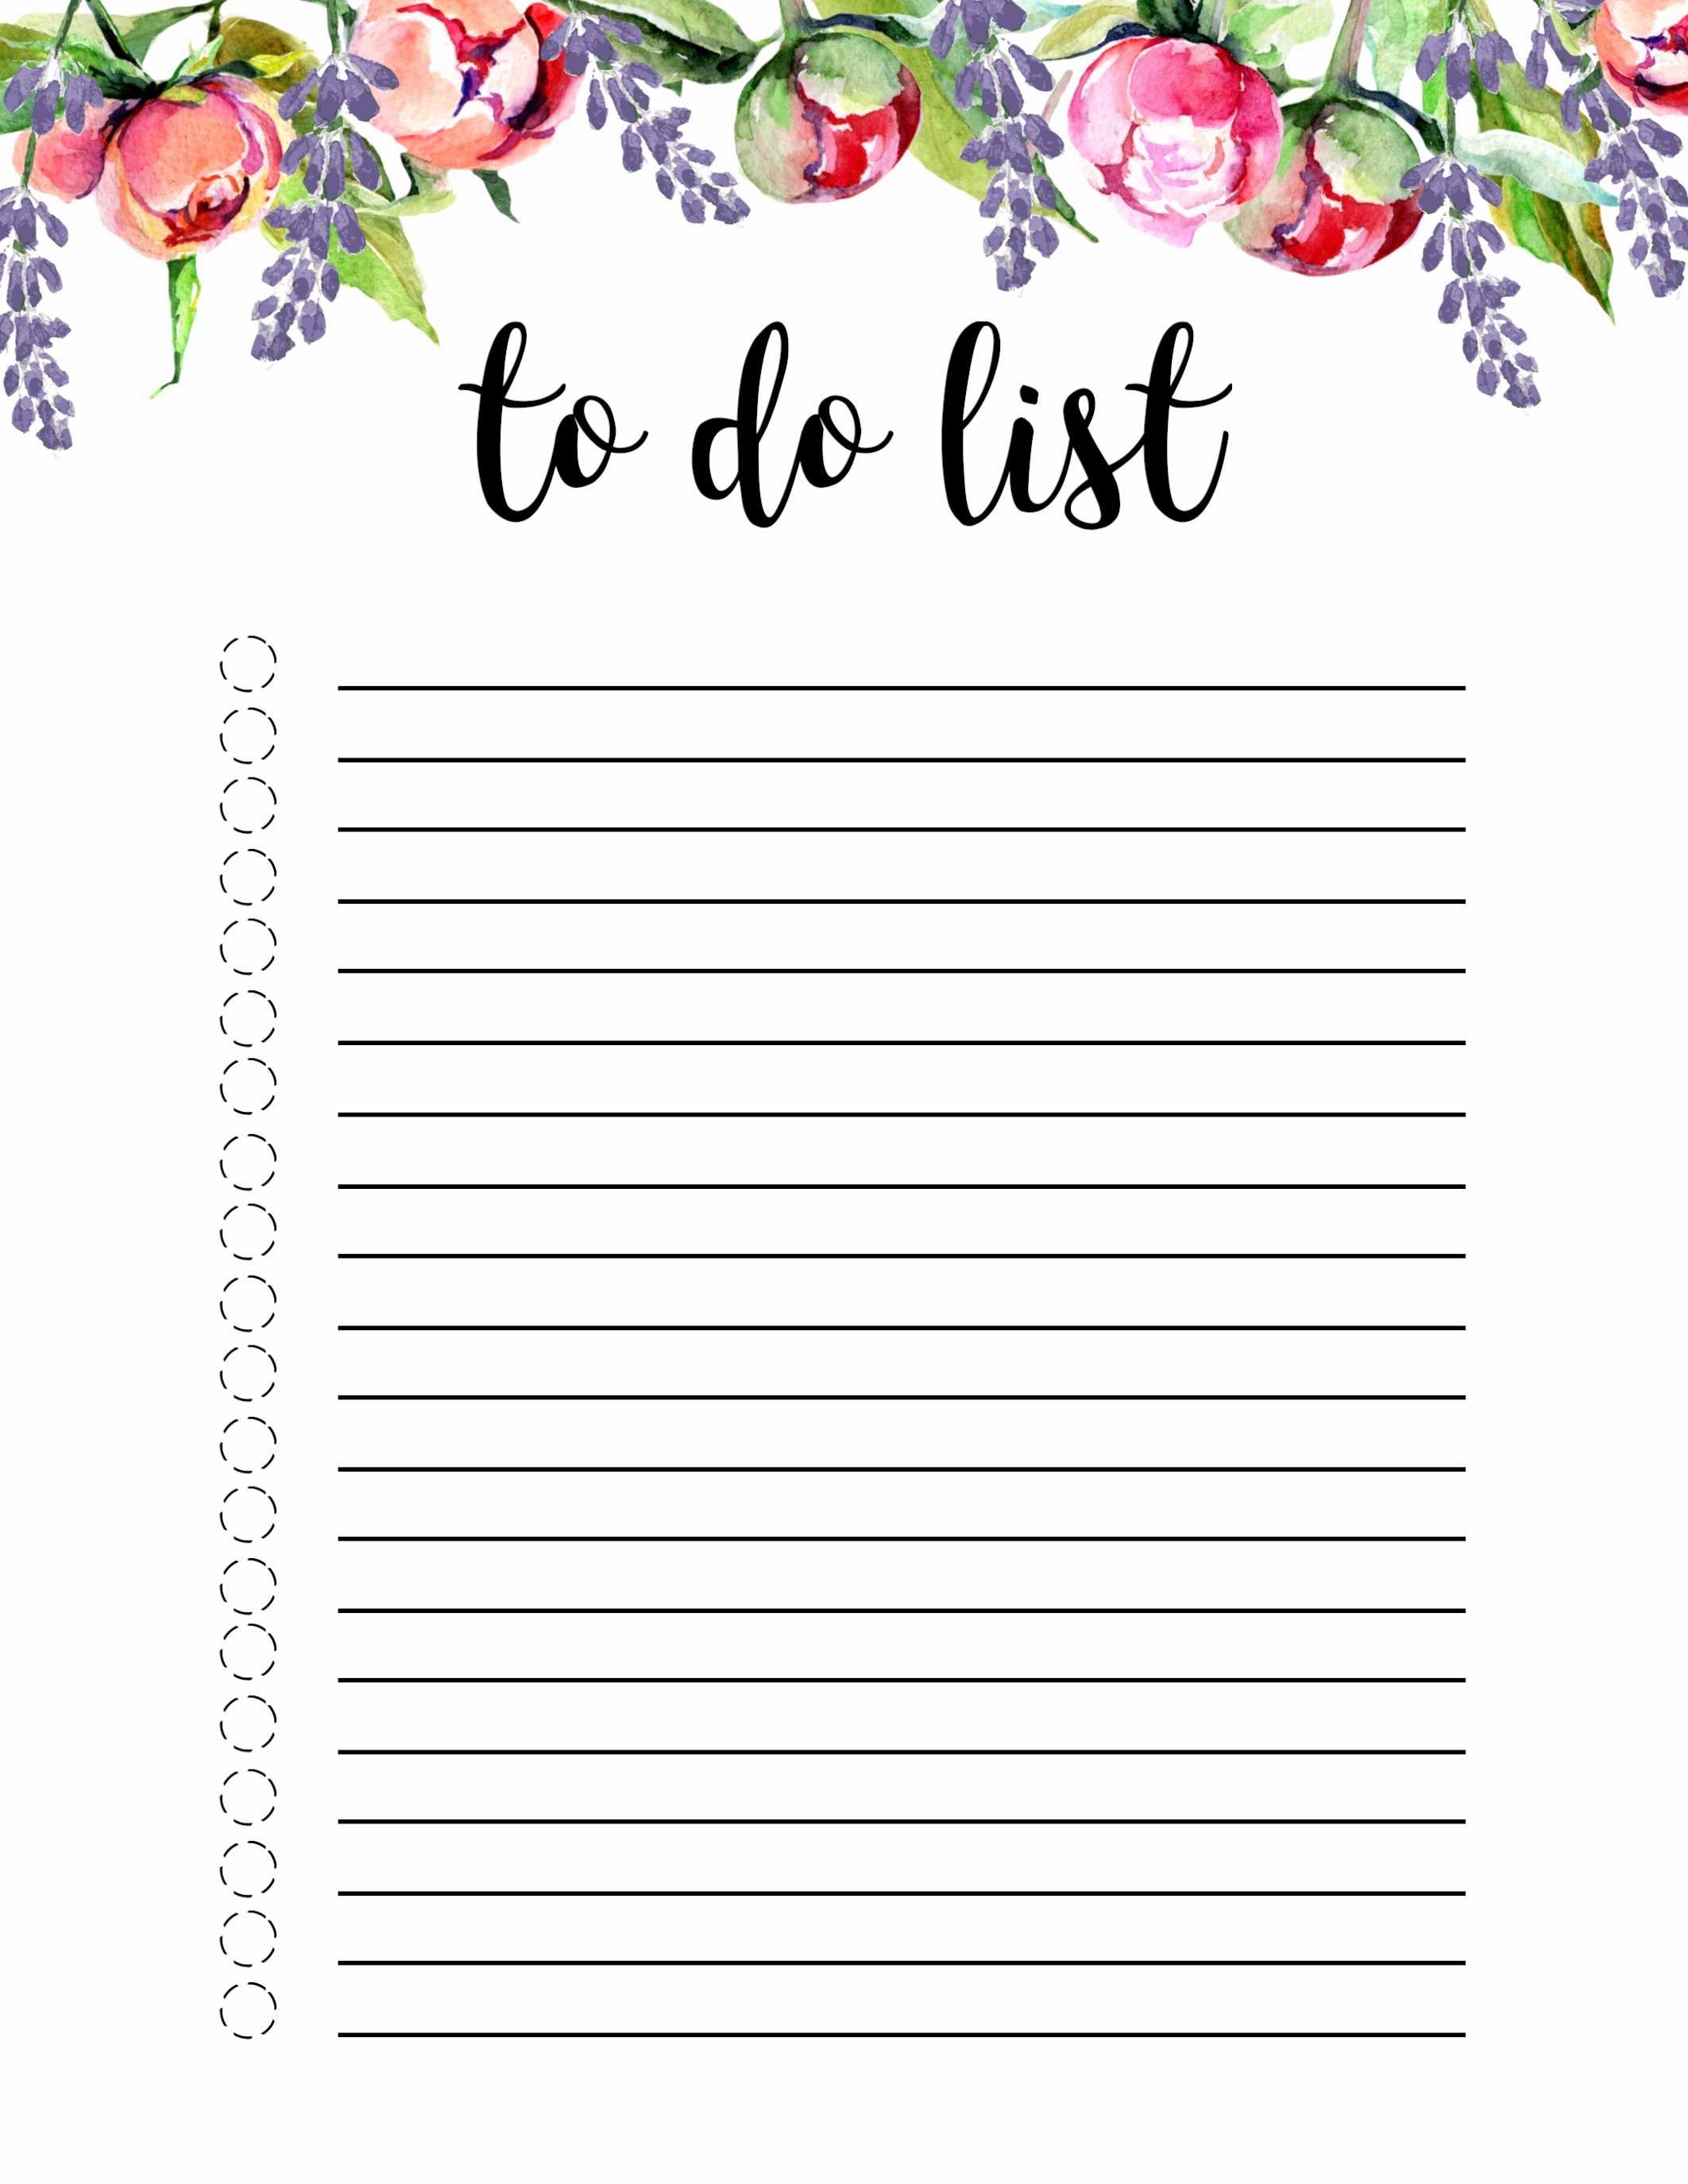 To Do List Template Free Luxury Floral to Do List Printable Template Paper Trail Design